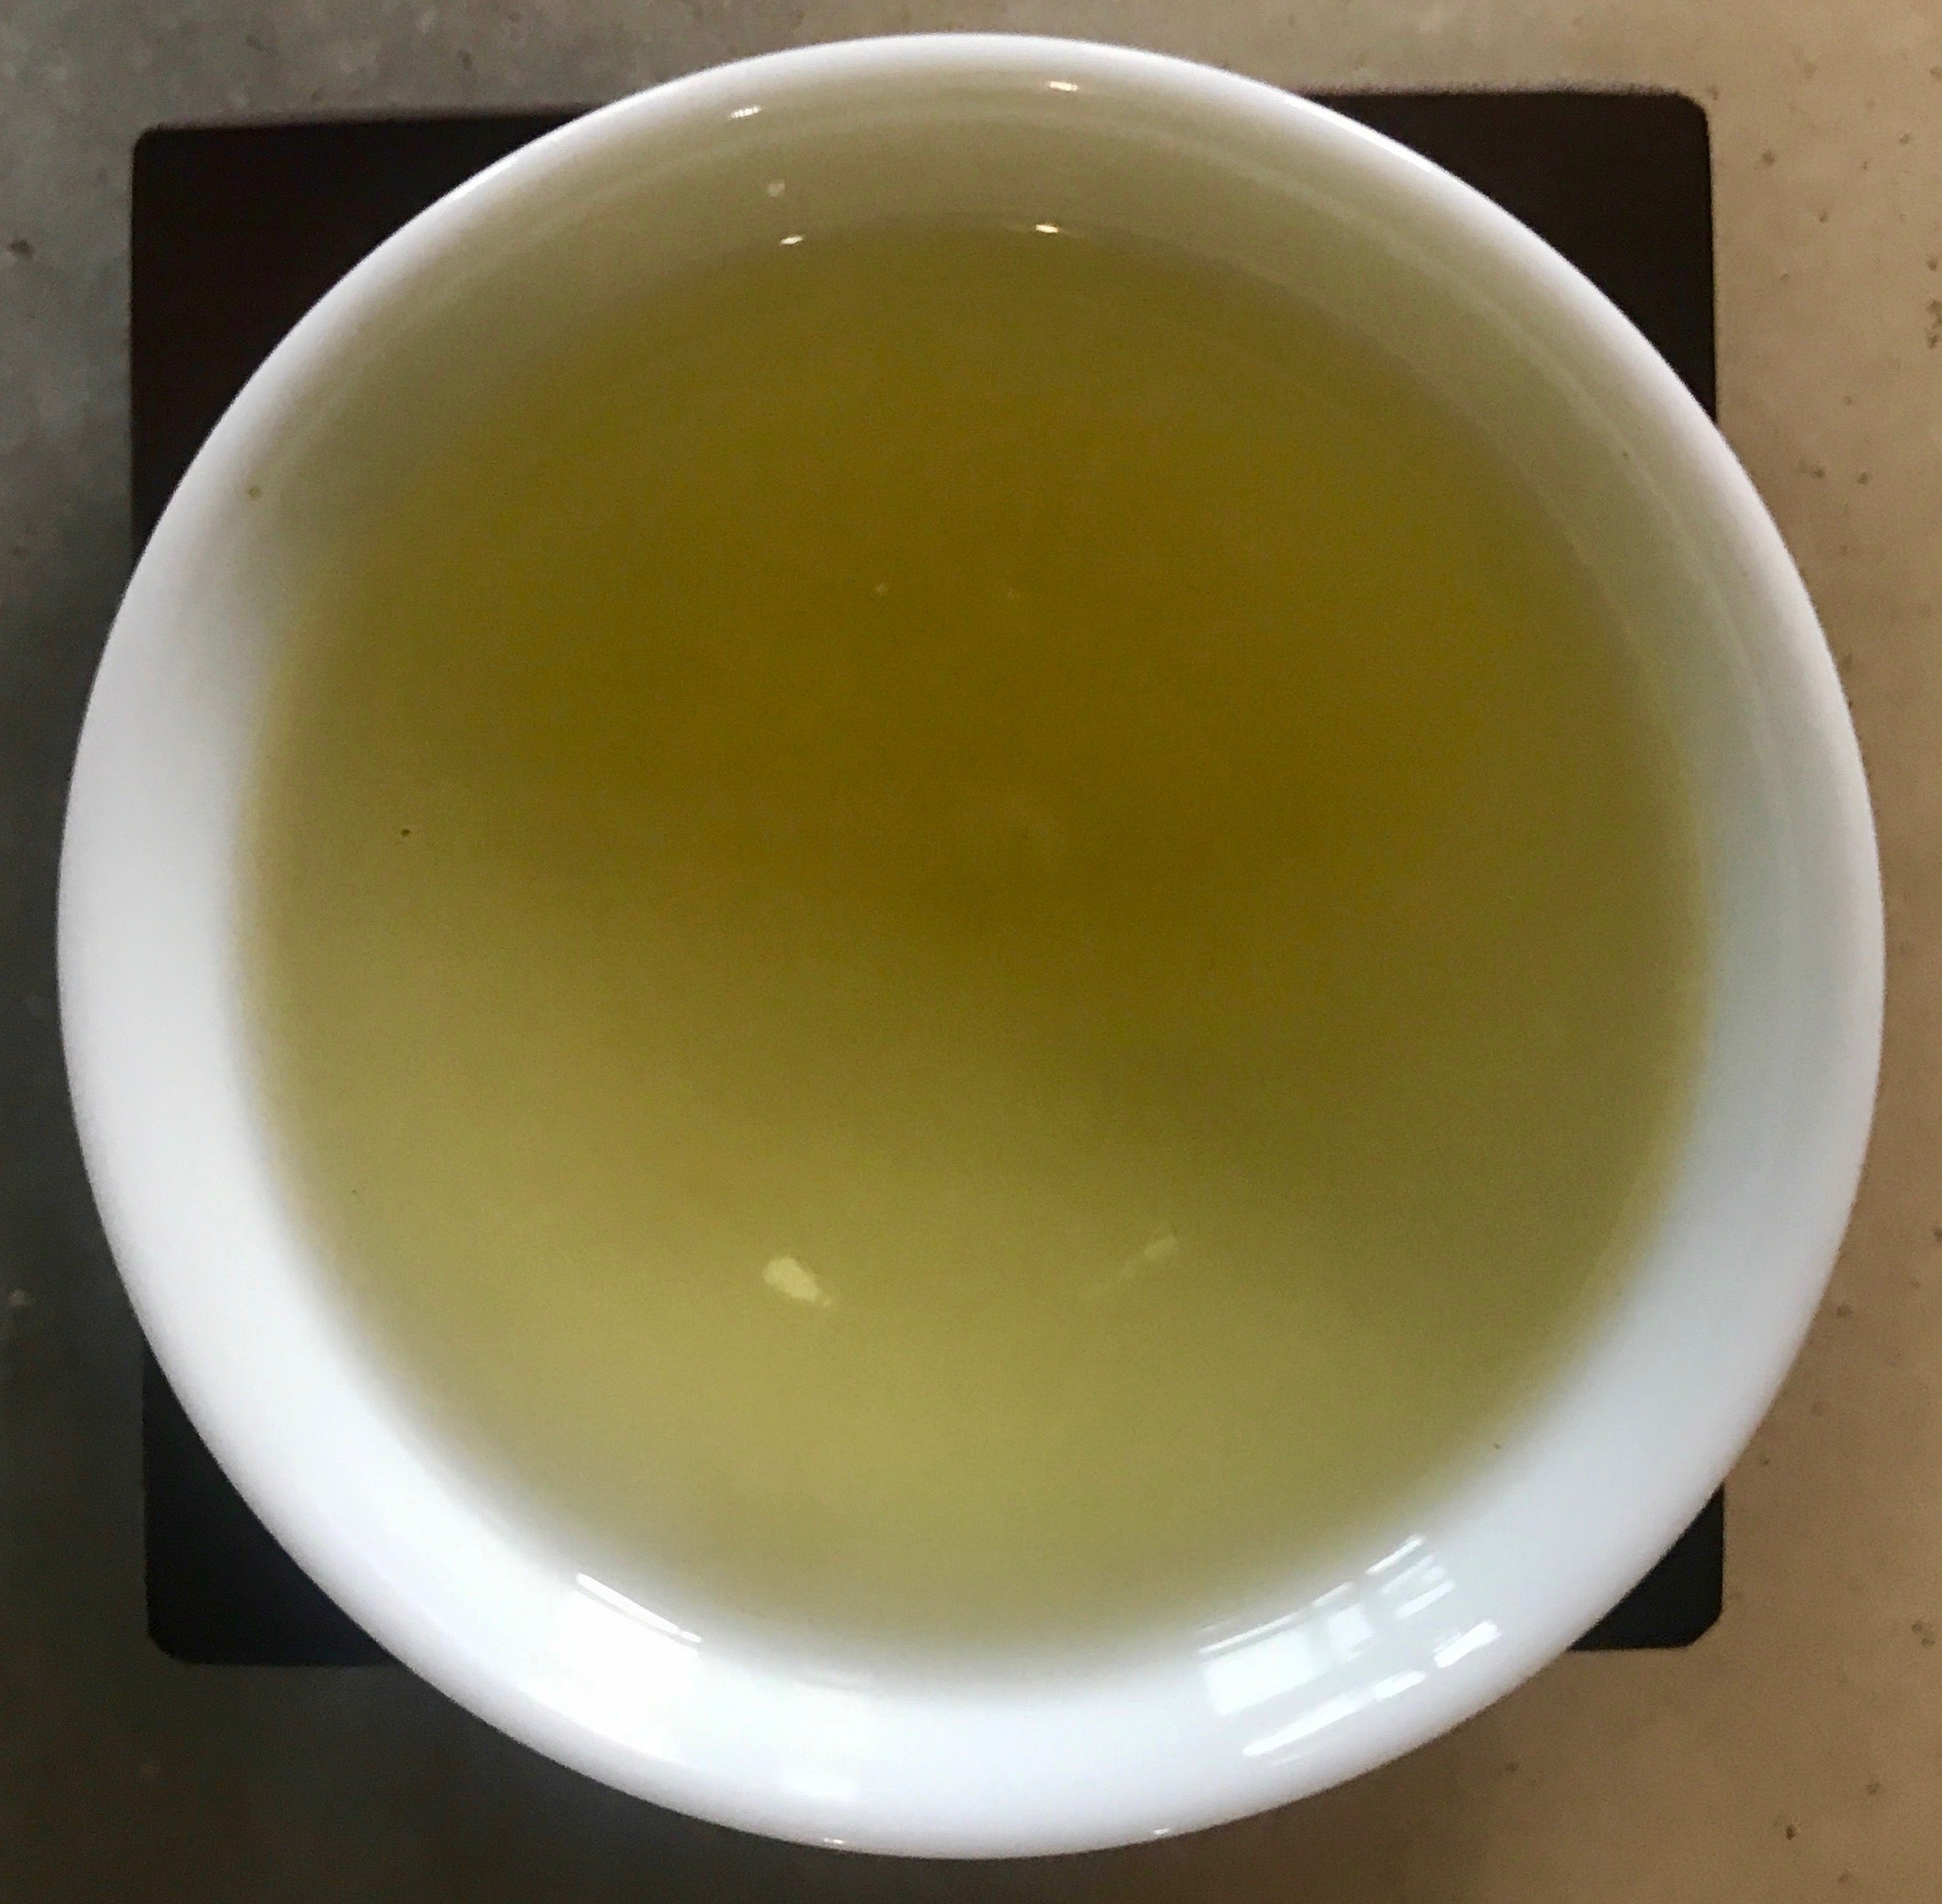 Long Feng Xia High Mountain Oolong brewed tea in a cup